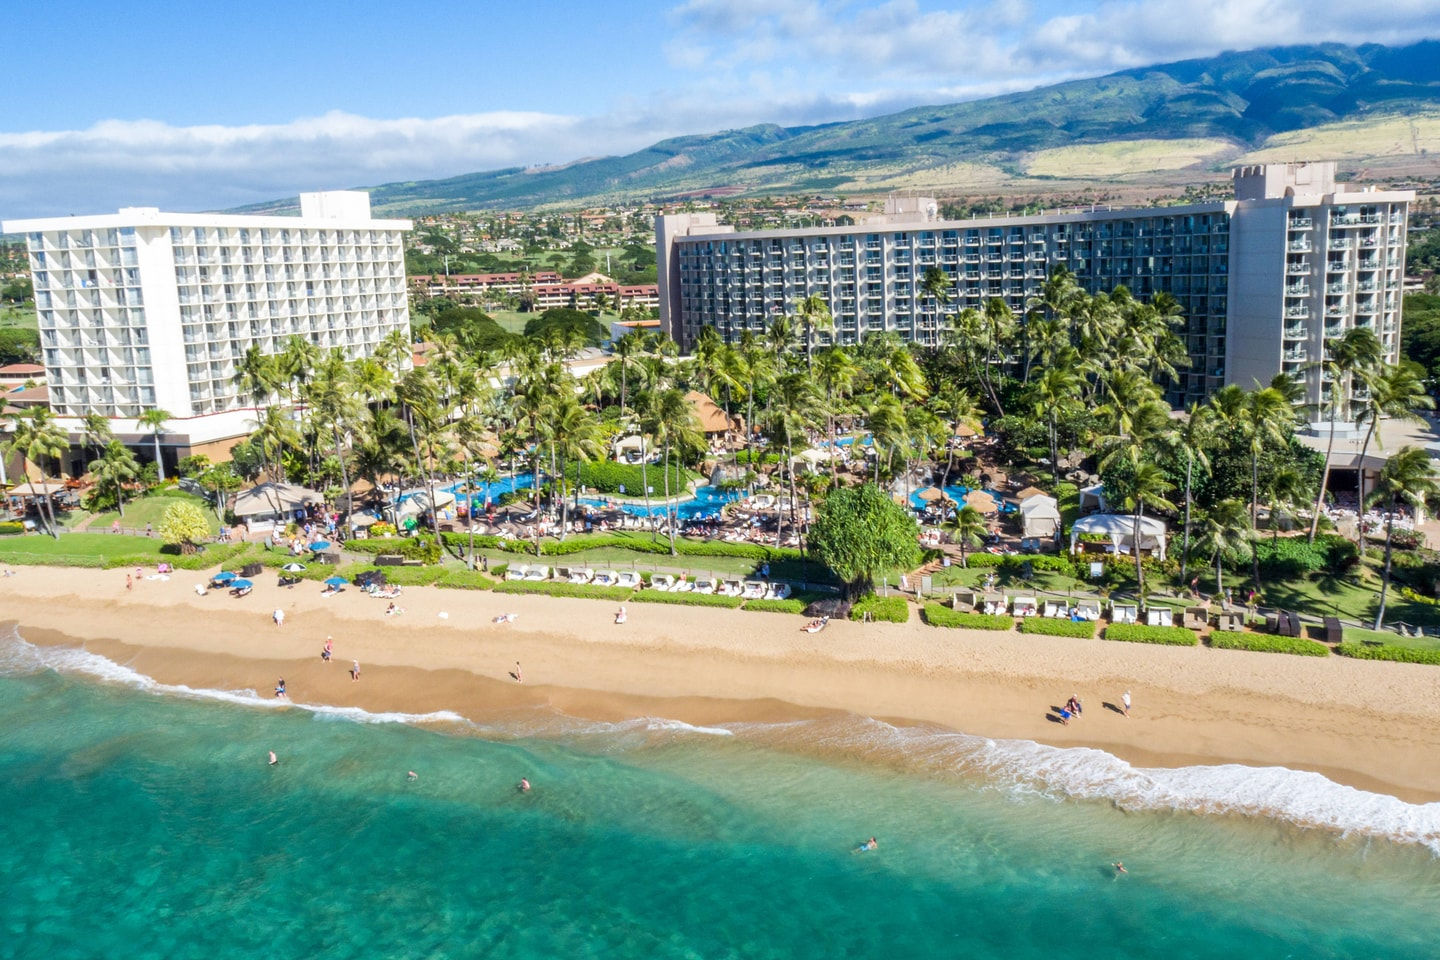 Best Marriott Bonvoy Category 6 and Category 7 Off-Peak Hotels & Resorts in Hawaii For Your Marriott Free Night Certificate